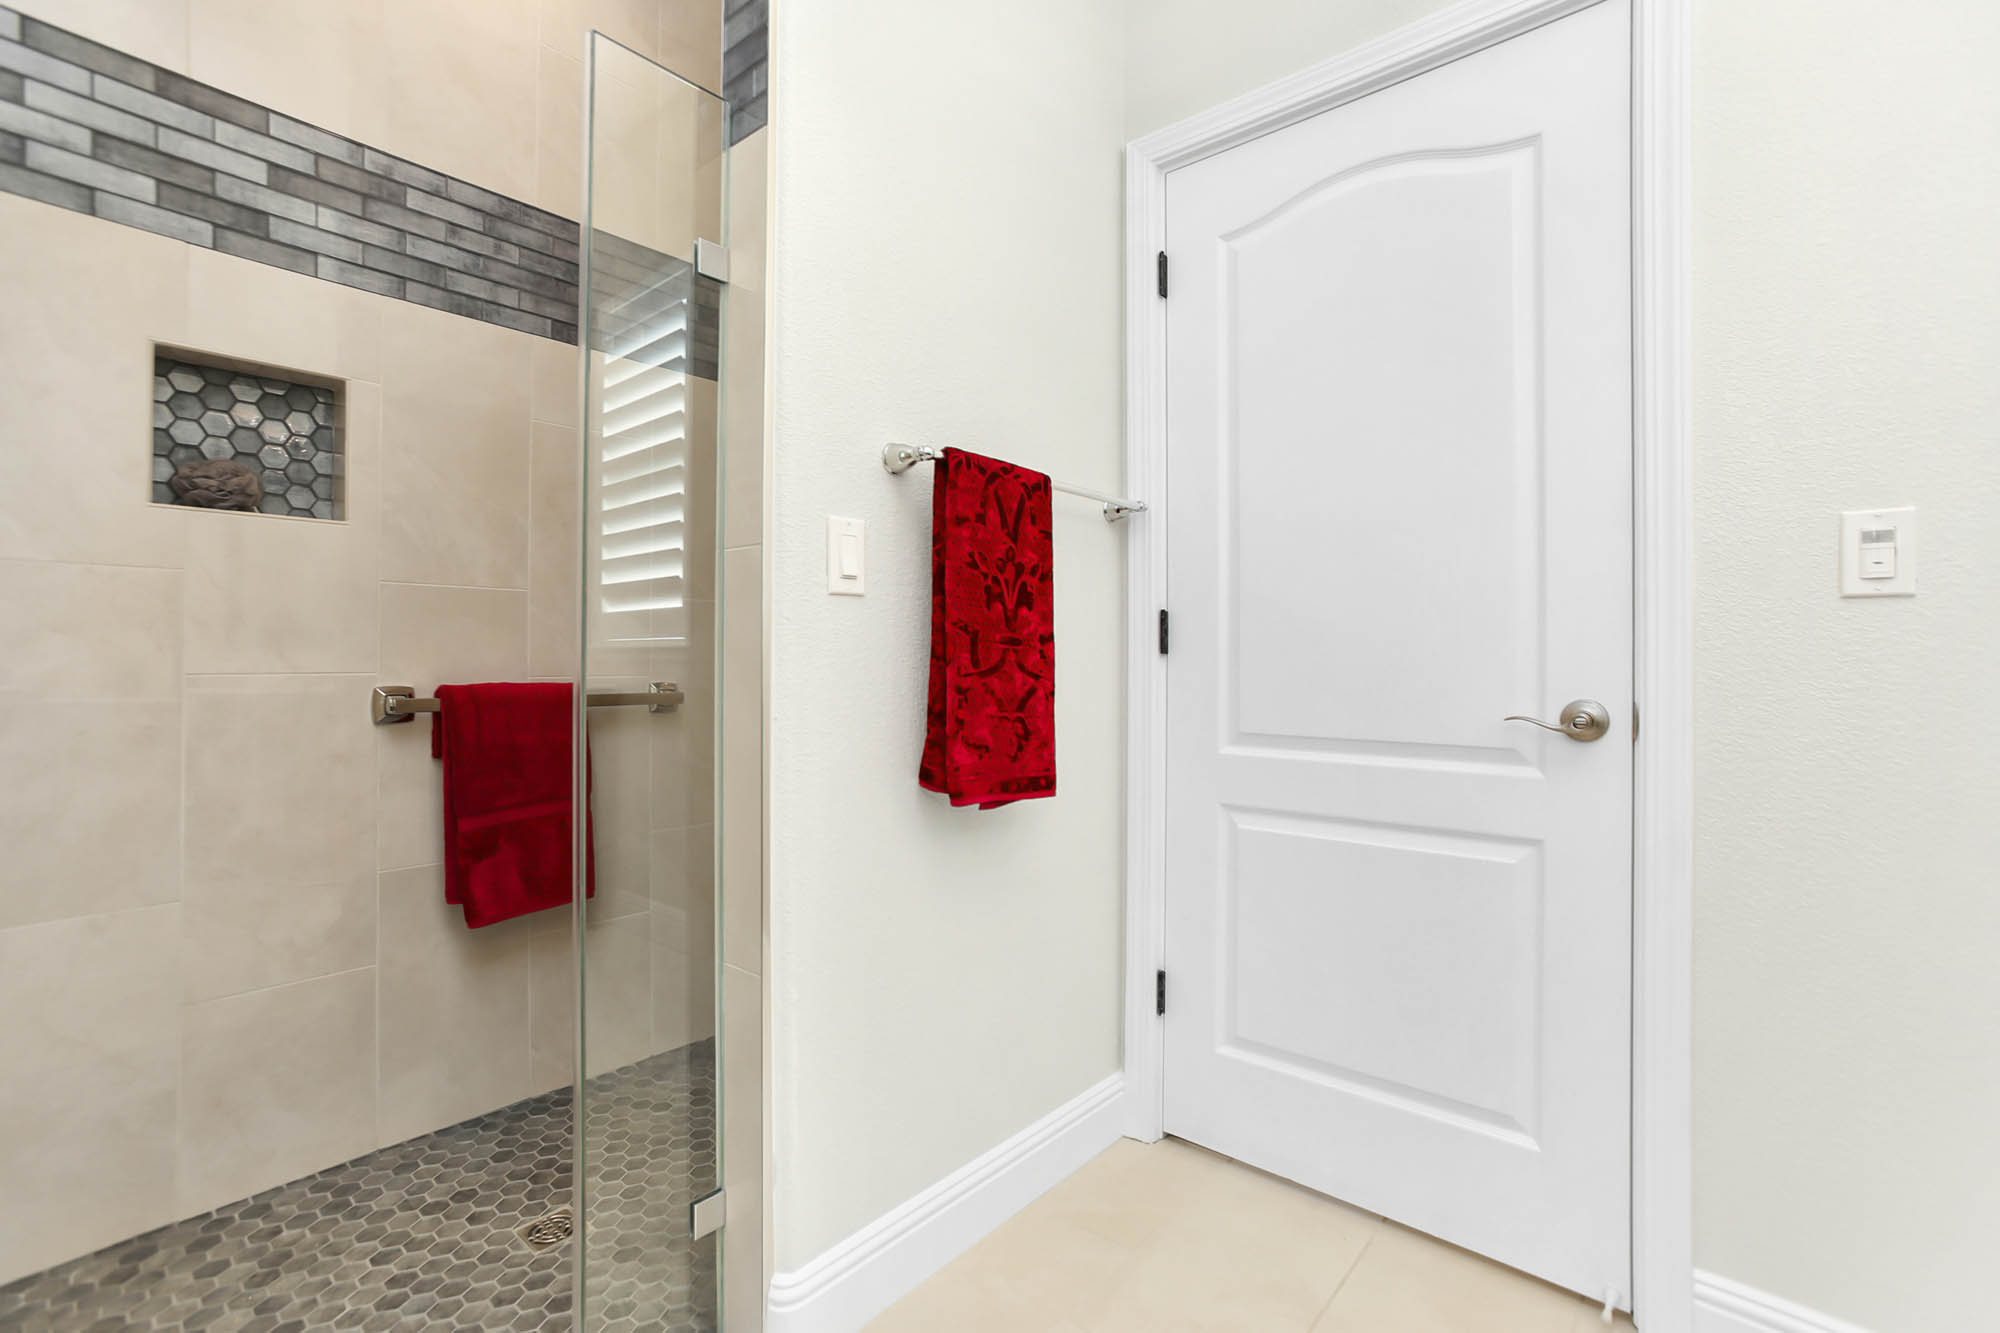 Fully accessible shower